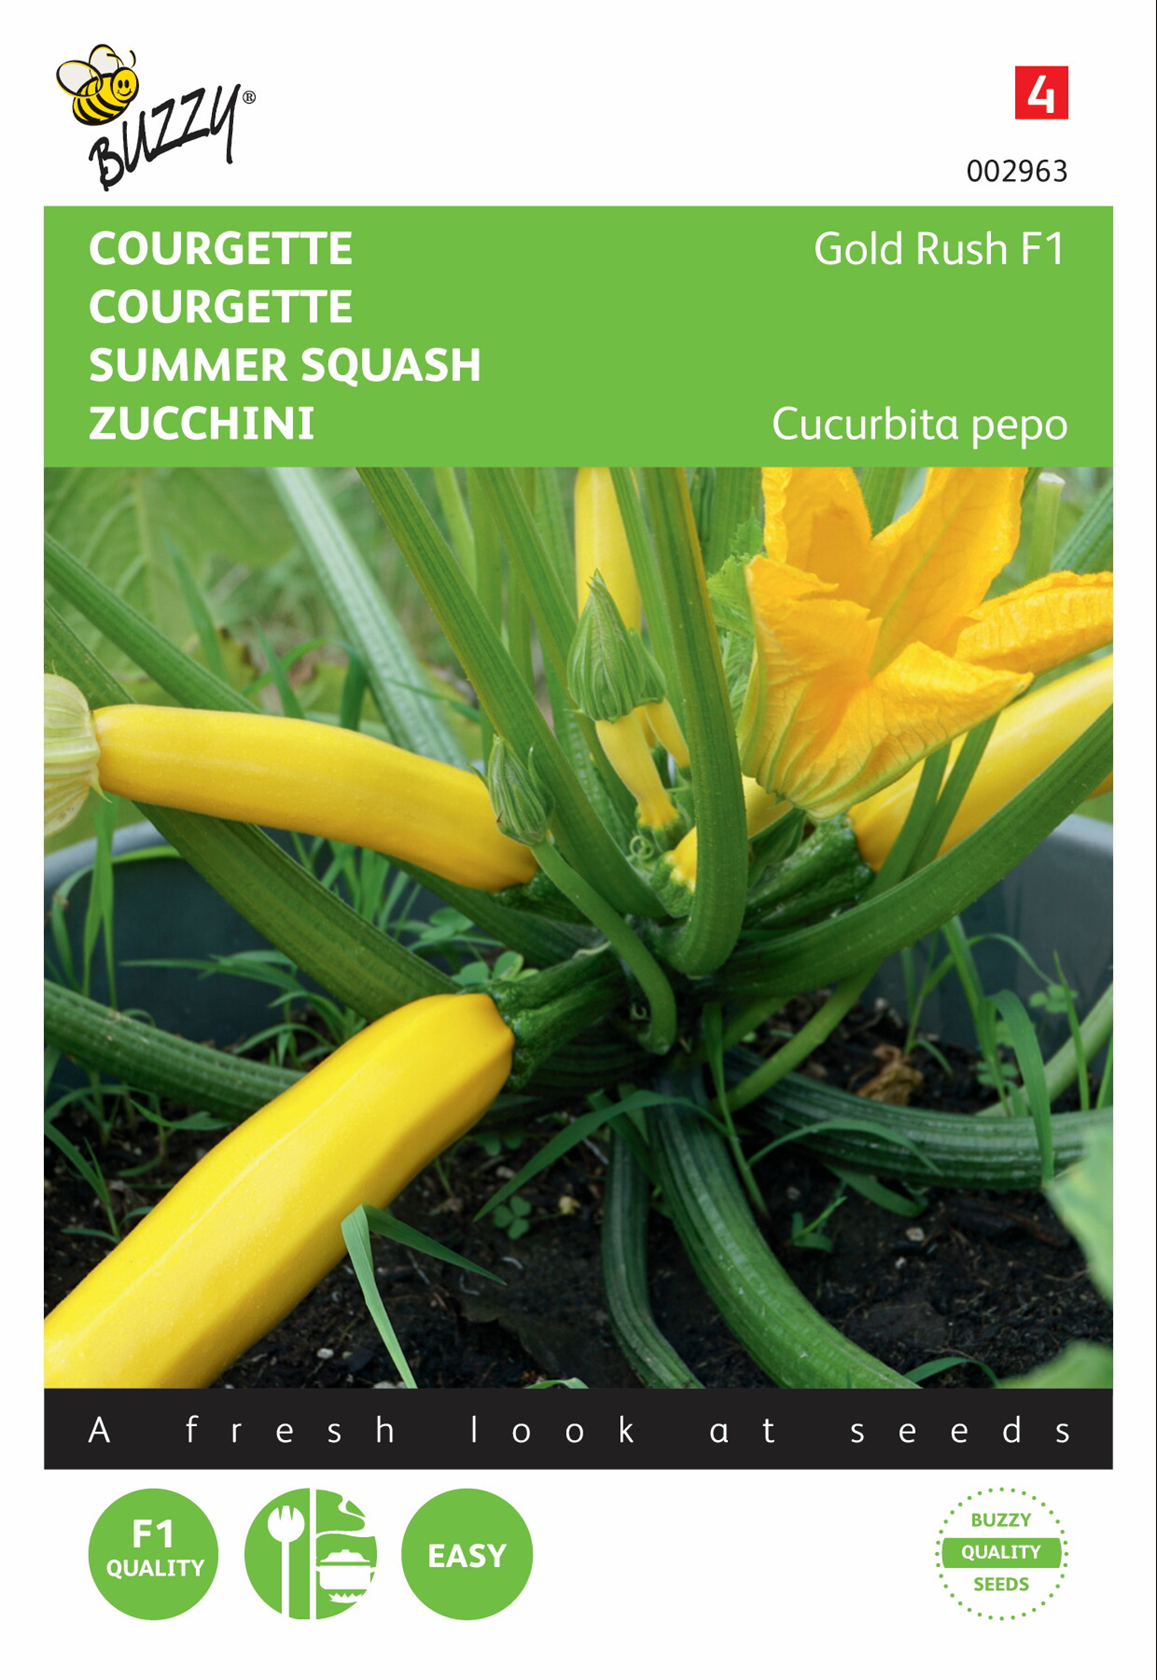 Buzzy-Courgette-Gold-Rush-F1